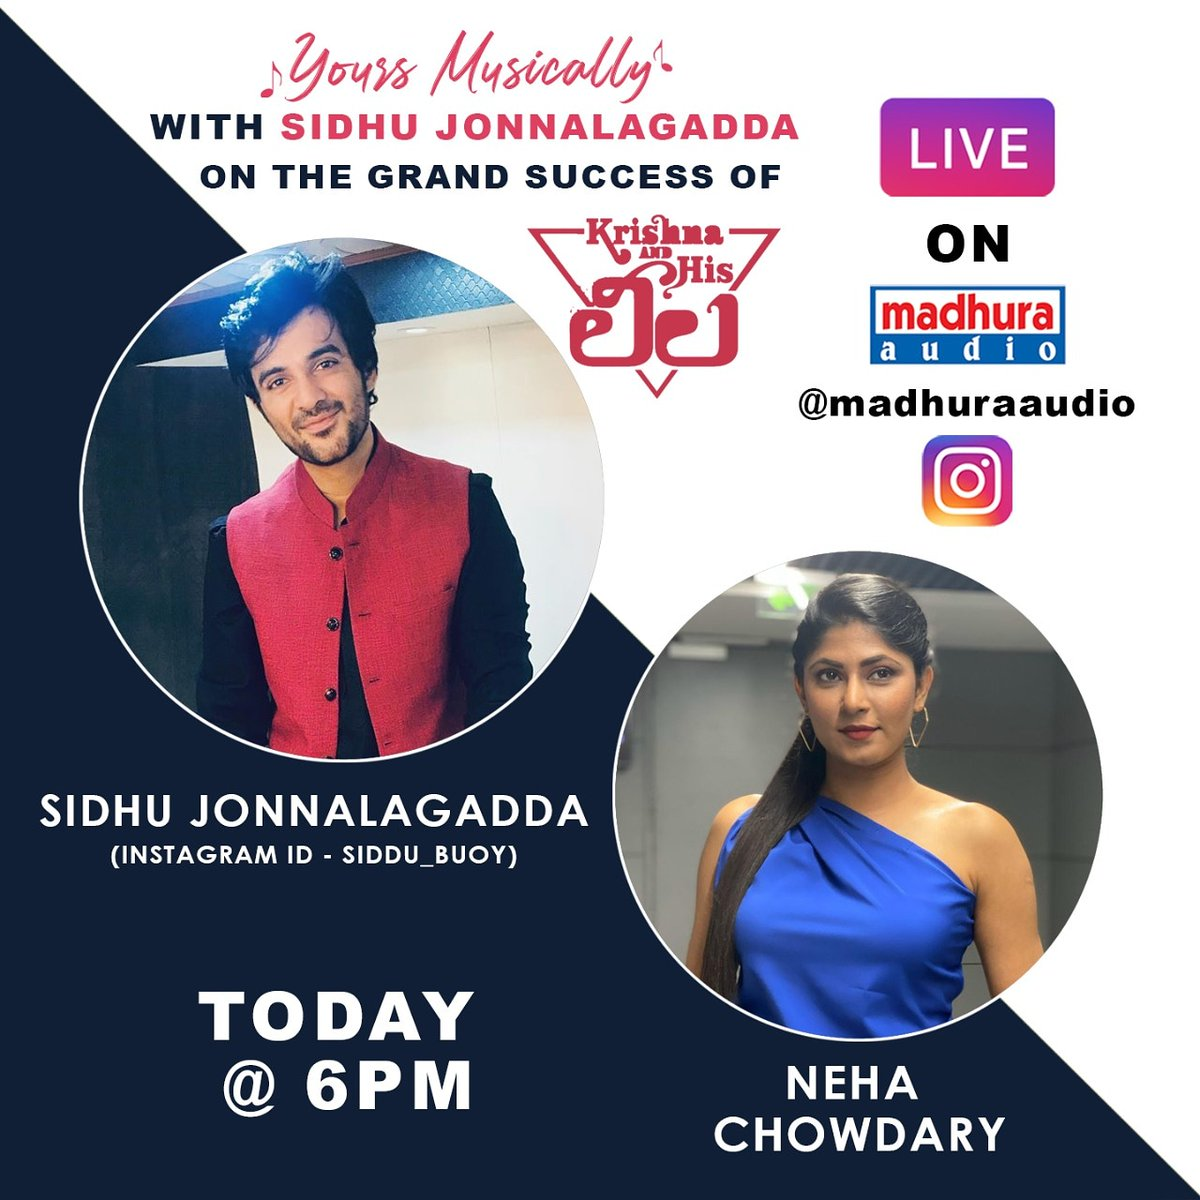 Wooahh Look Here @Siddu_buoy Is Joining With Us In Live Today At 6 PM With Anchor @thenehachowdary Stay Tuned To @MadhuraAudio Insta Live  #YoursMusically #TeluguMusic #telugumusically #TeluguIndependentMusic #originalmusic #telugumusic #telugumusicalworld #madhuraaudiopic.twitter.com/ljeG0dsL61